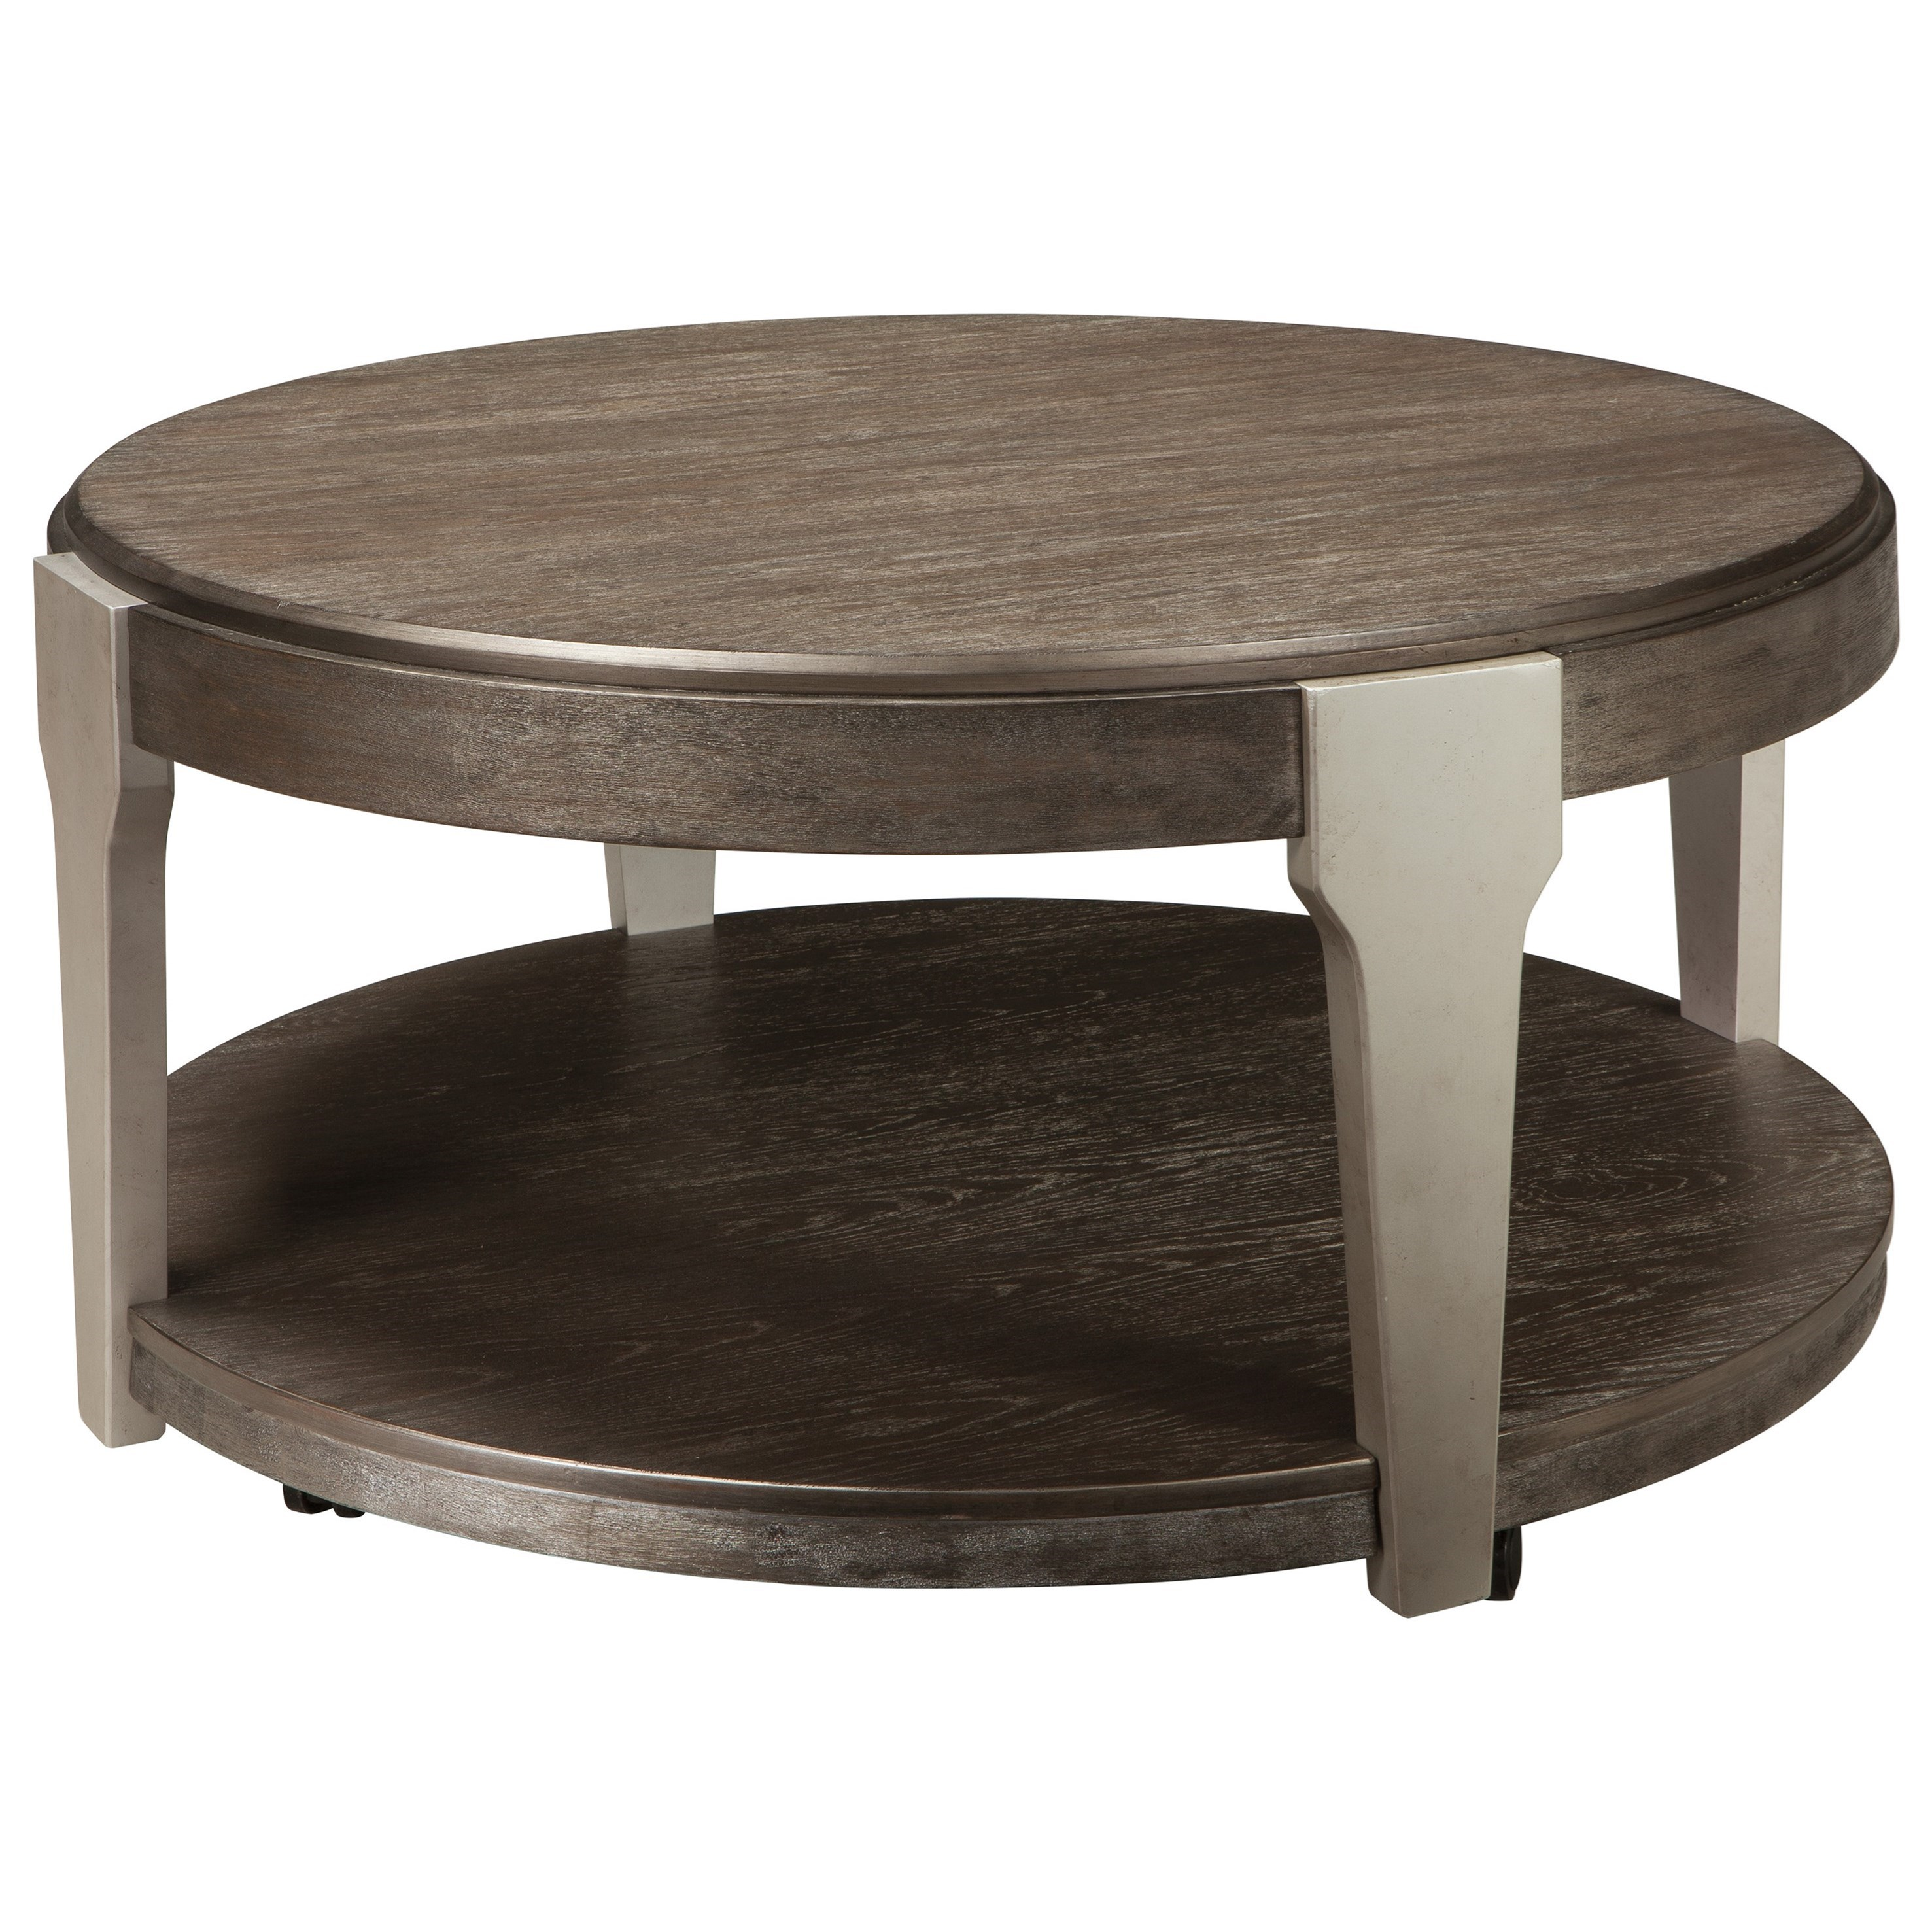 Signature Design by Ashley Brenzington Round Cocktail Table - Item Number: T453-8